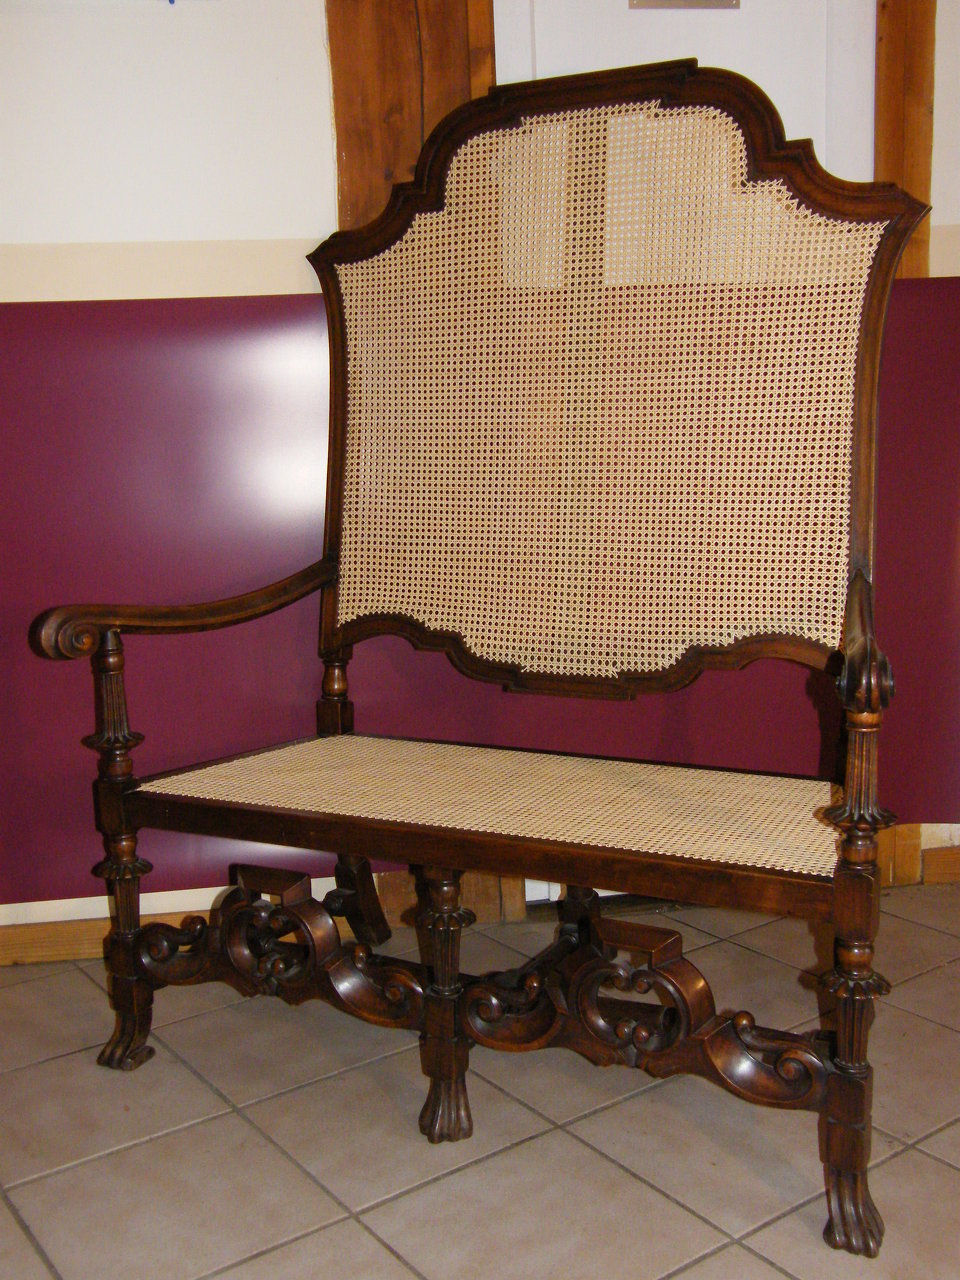 cannage yvelines versailles tarif cannage rempaillage pris chaise. Black Bedroom Furniture Sets. Home Design Ideas